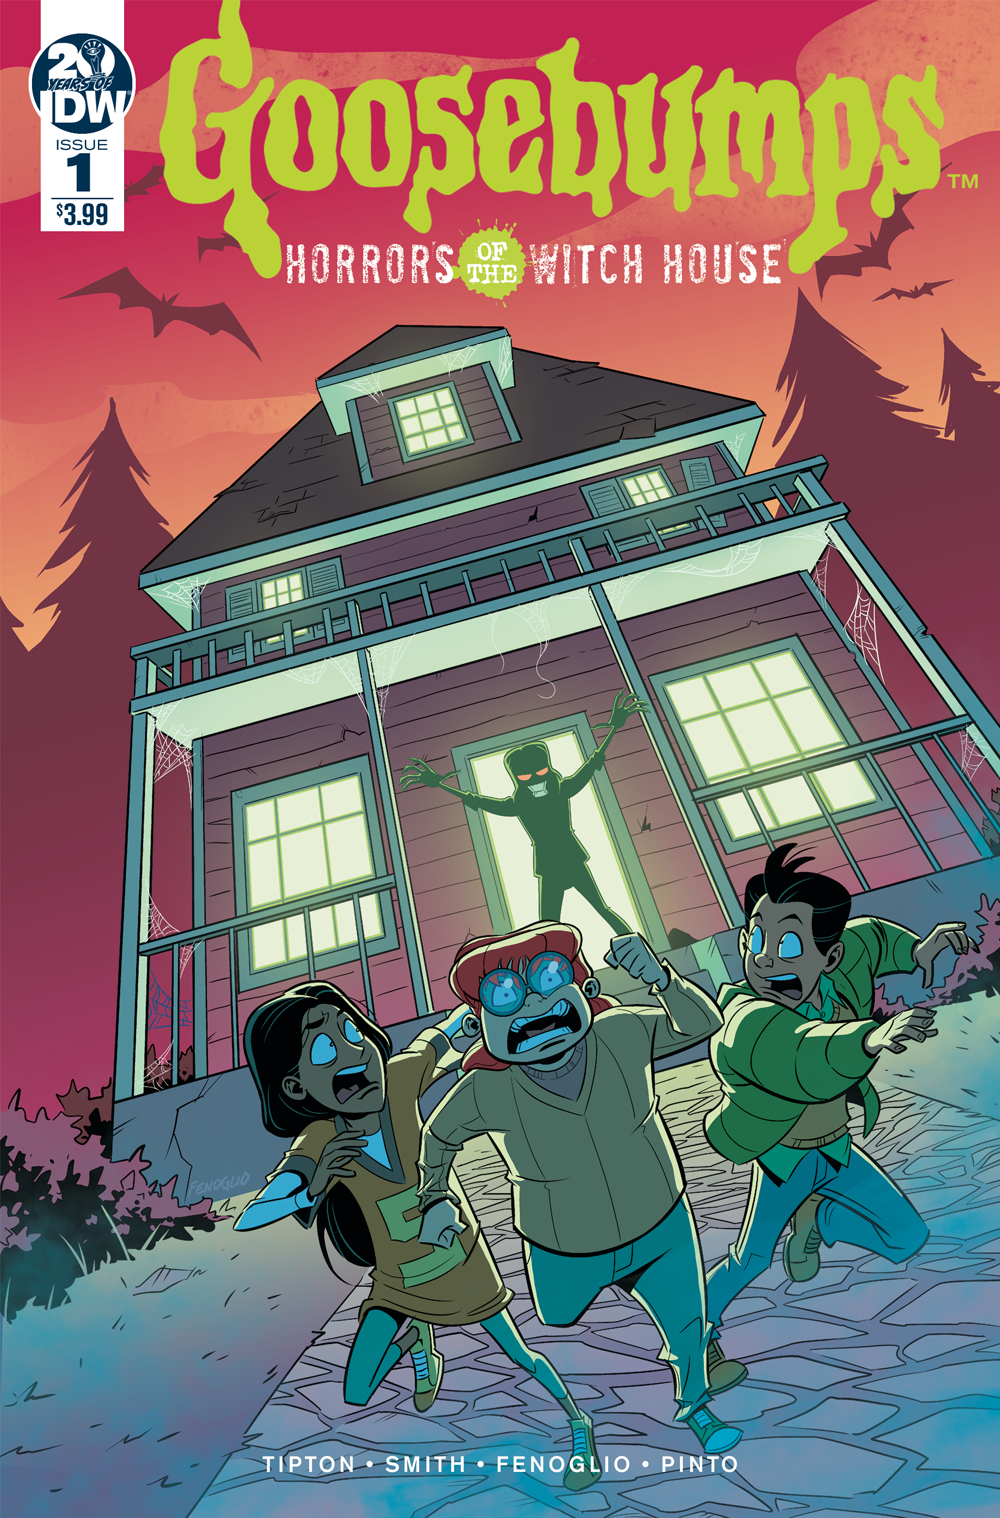 GOOSEBUMPS HORRORS OF THE WITCH HOUSE #1 FENOGLIO